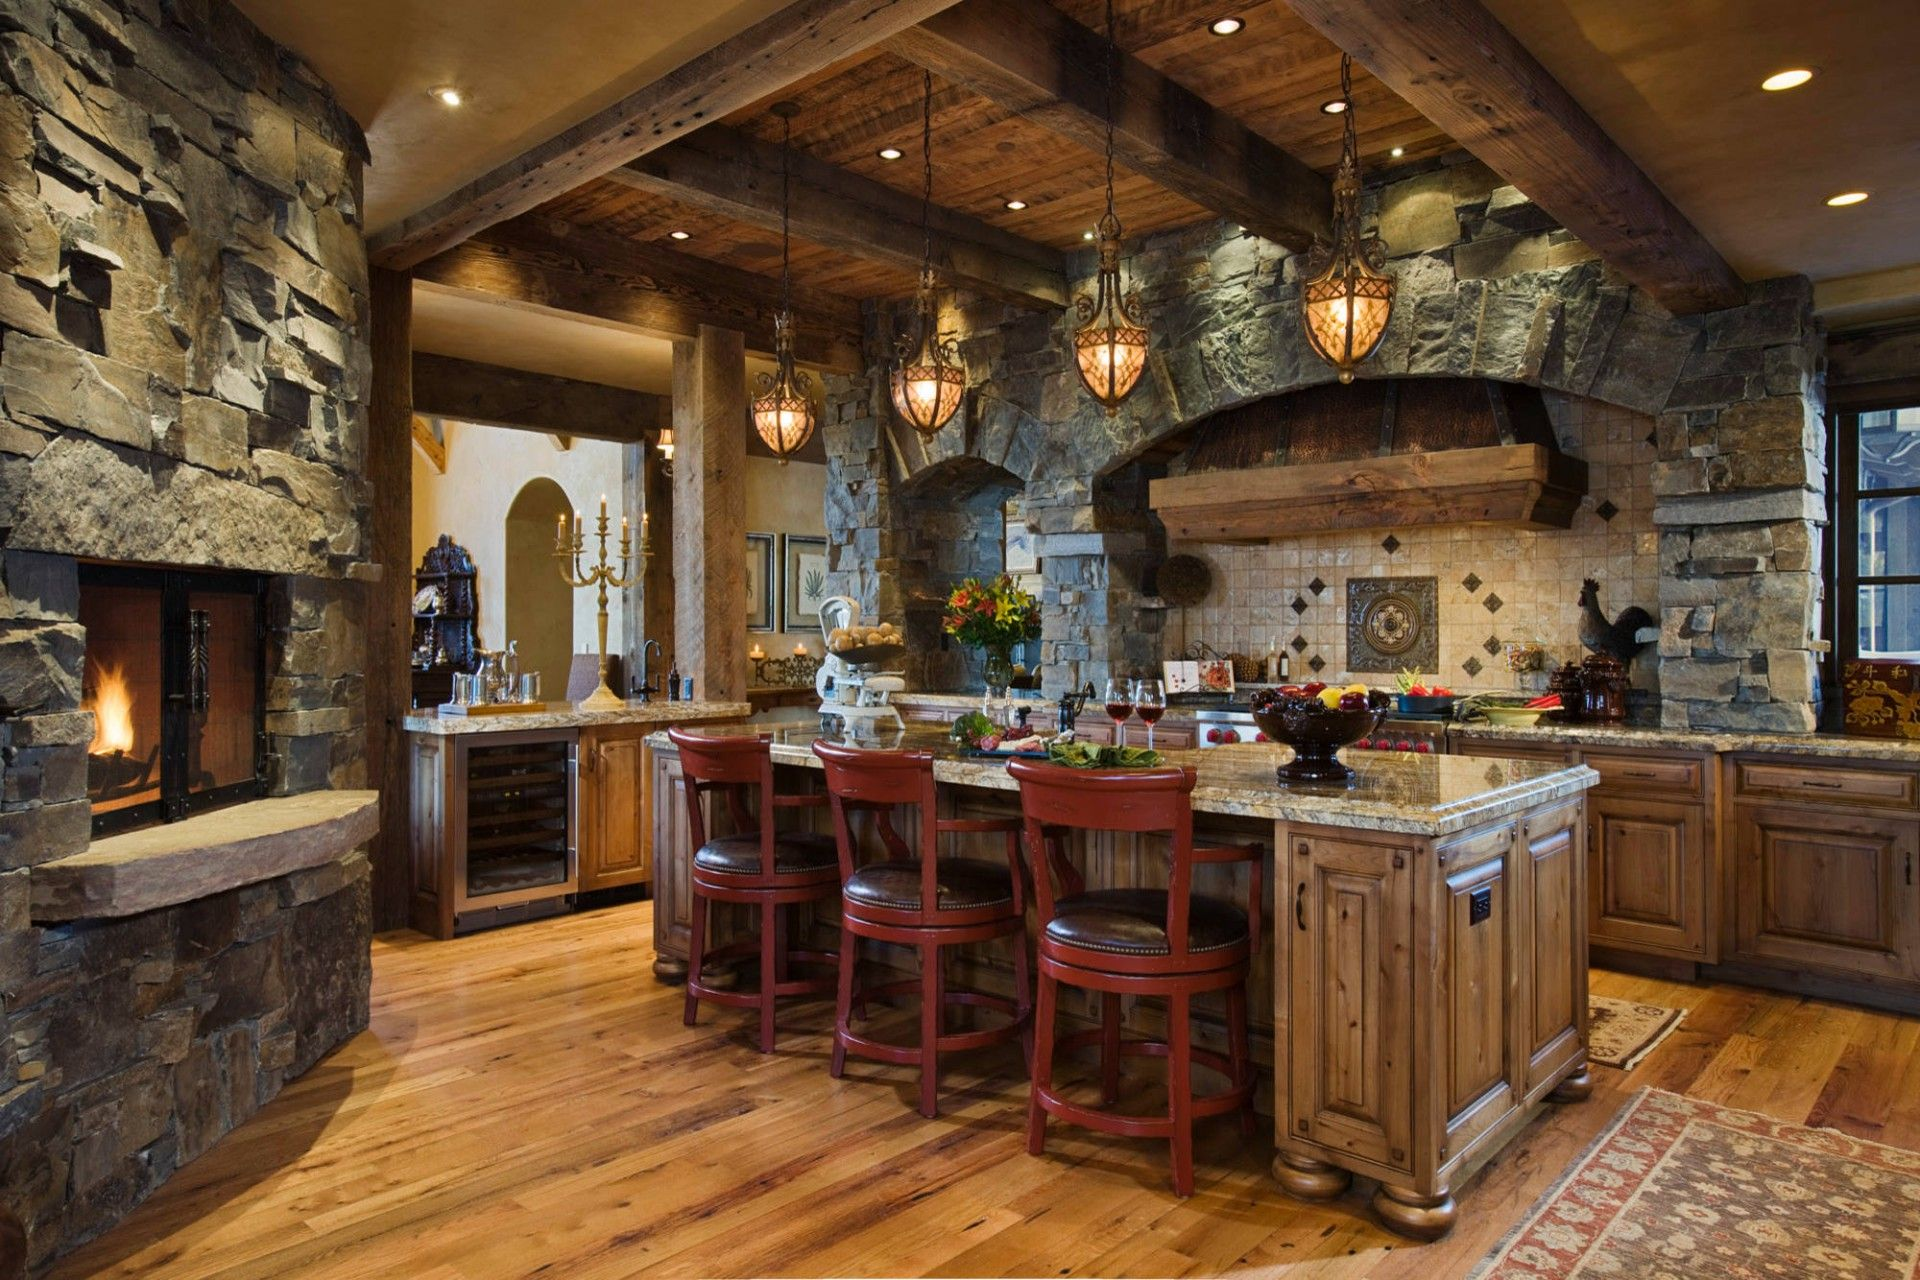 Stone Kitchen Interior Decoration Ideas. American country in the luxuriously decorated space